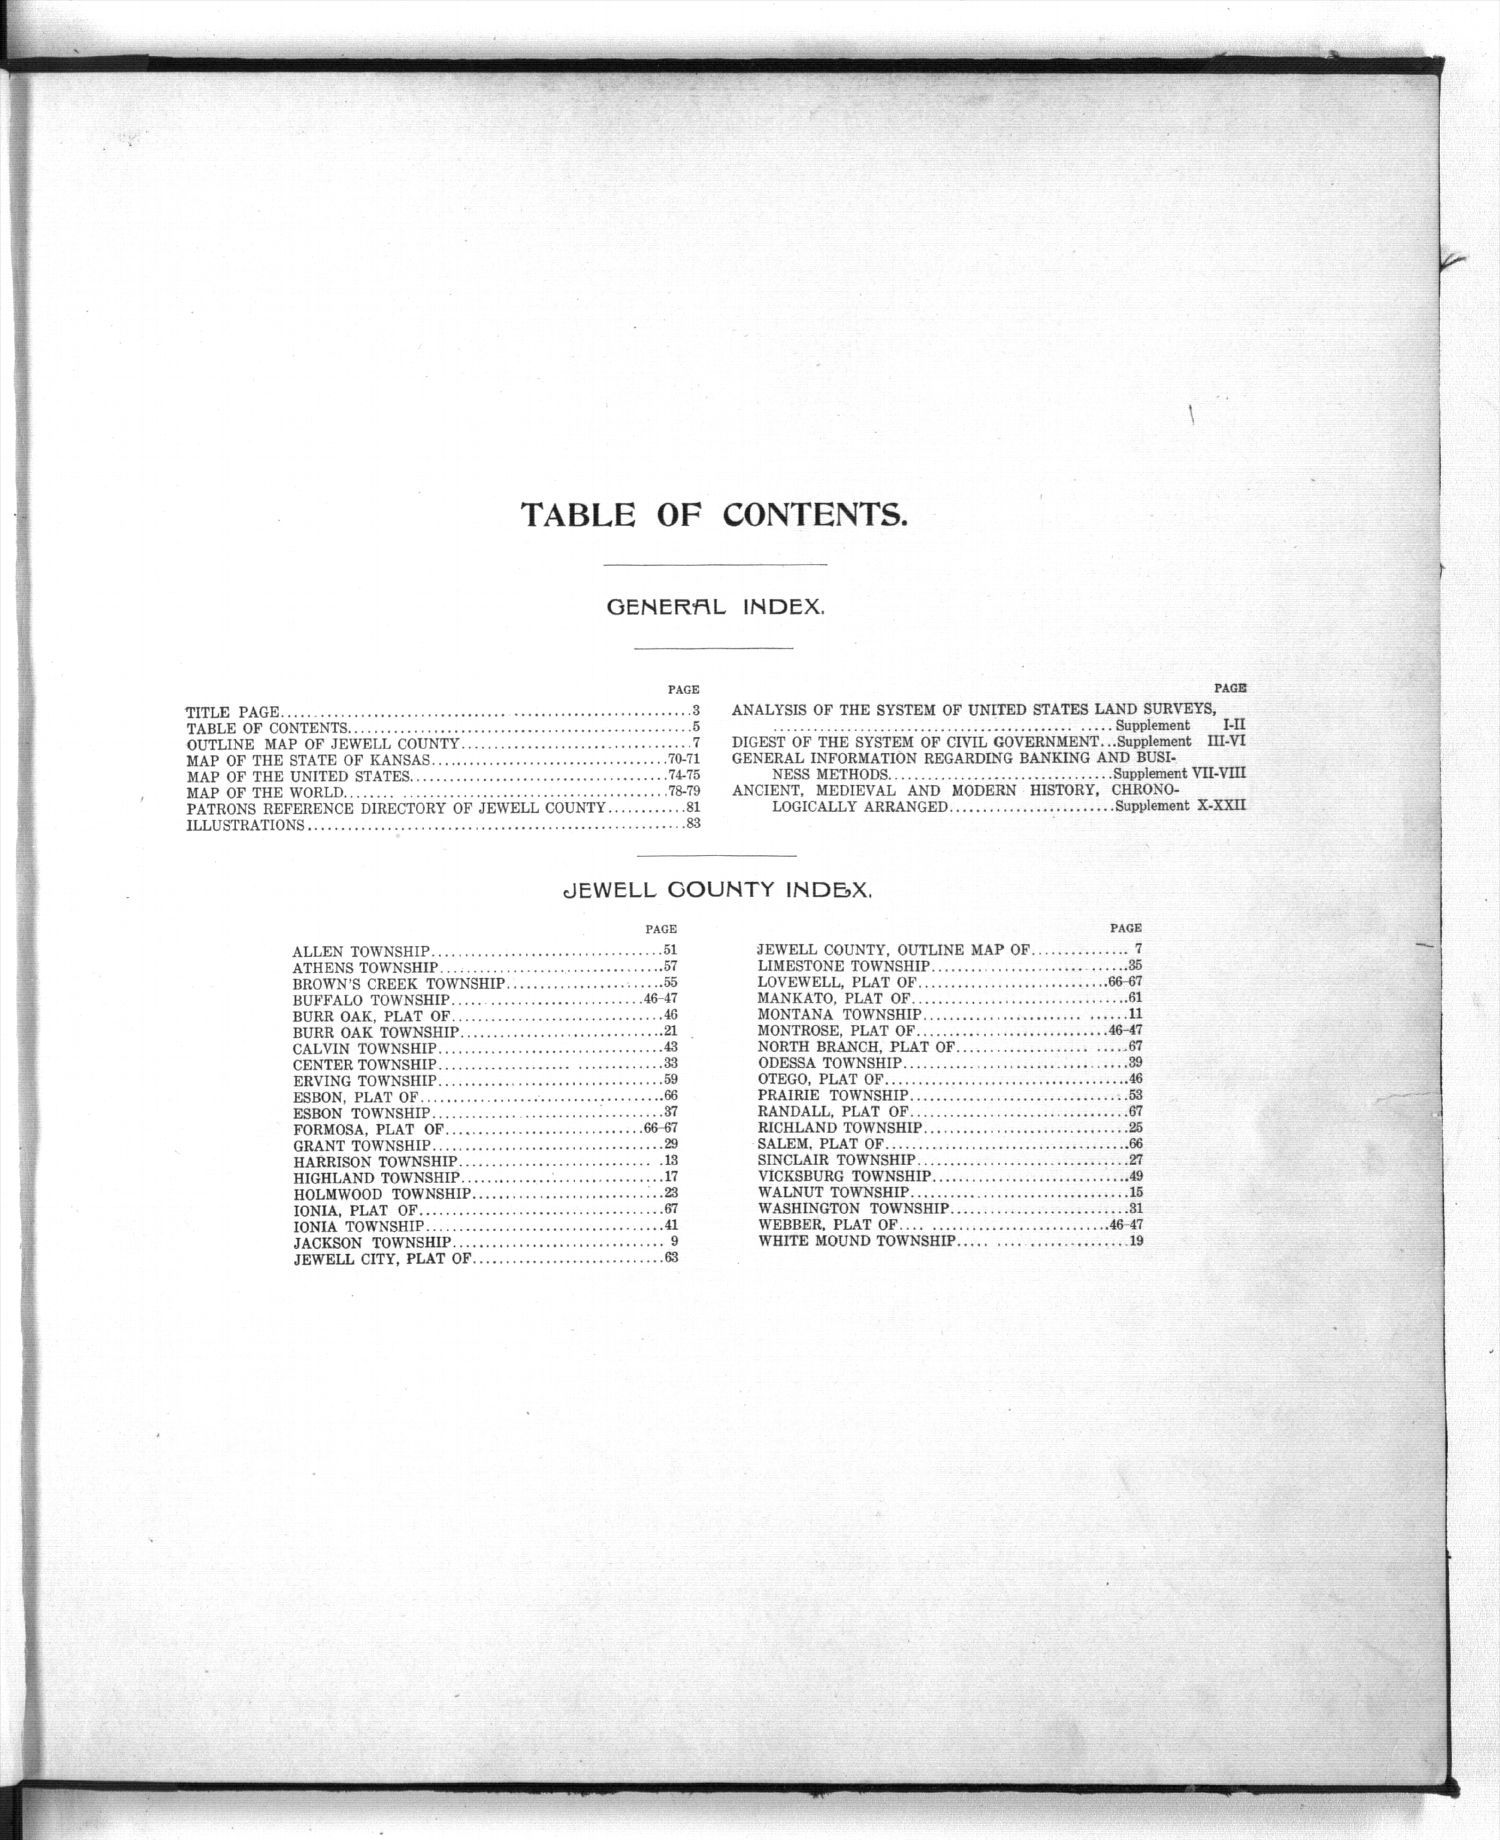 Standard atlas of Jewell County, Kansas - Table of Contents